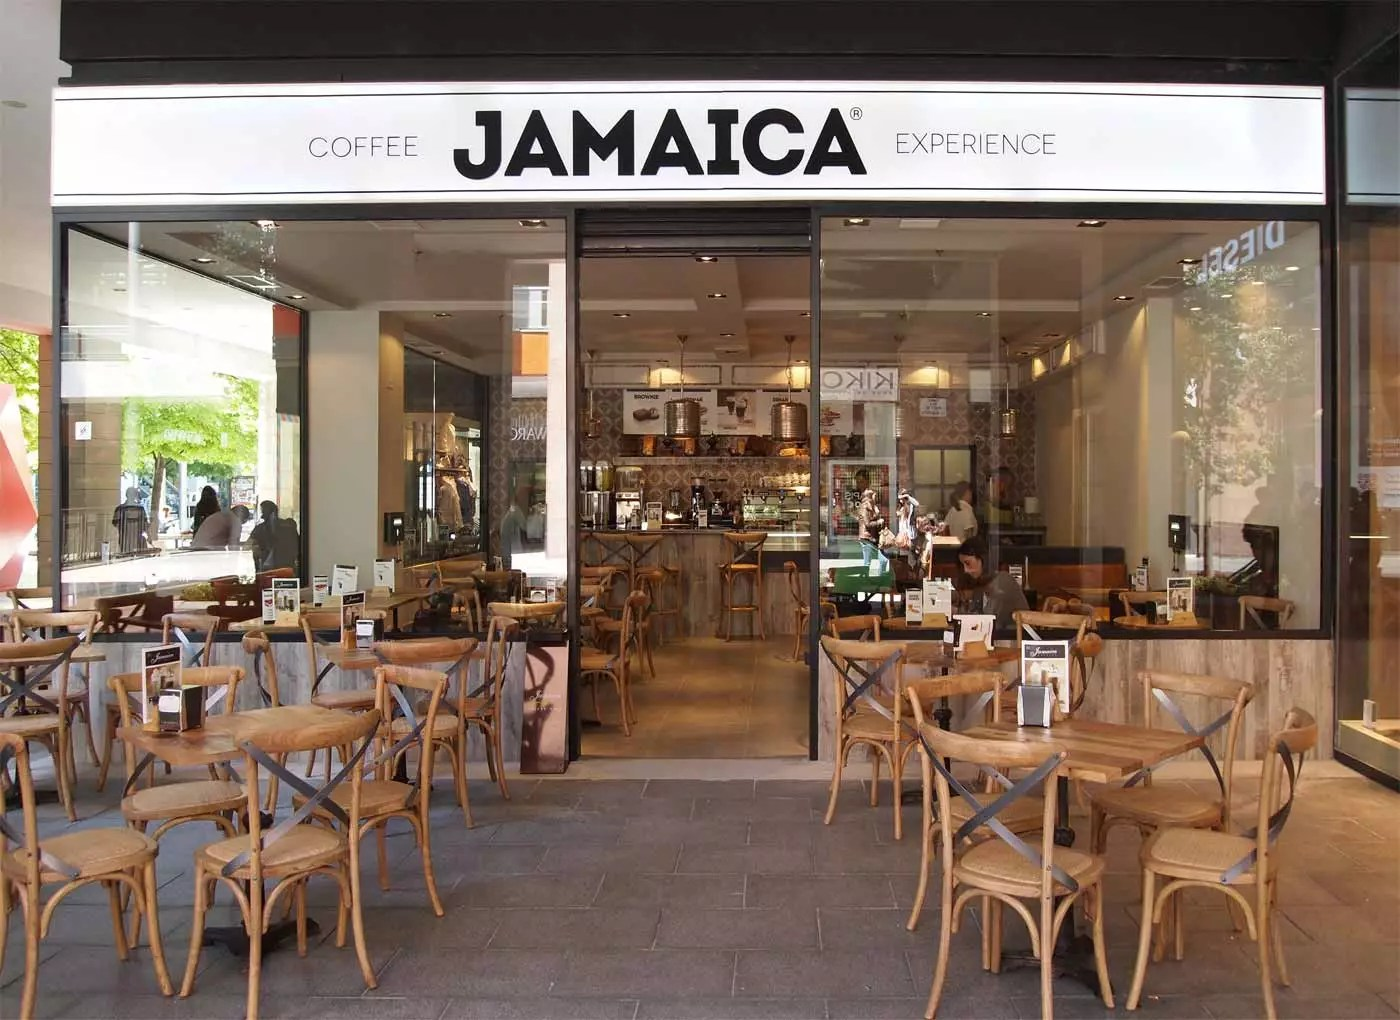 Muebles Para Una Cafeteria Francisco Segarra Proyecta En Local De Jamaica Coffee Shop